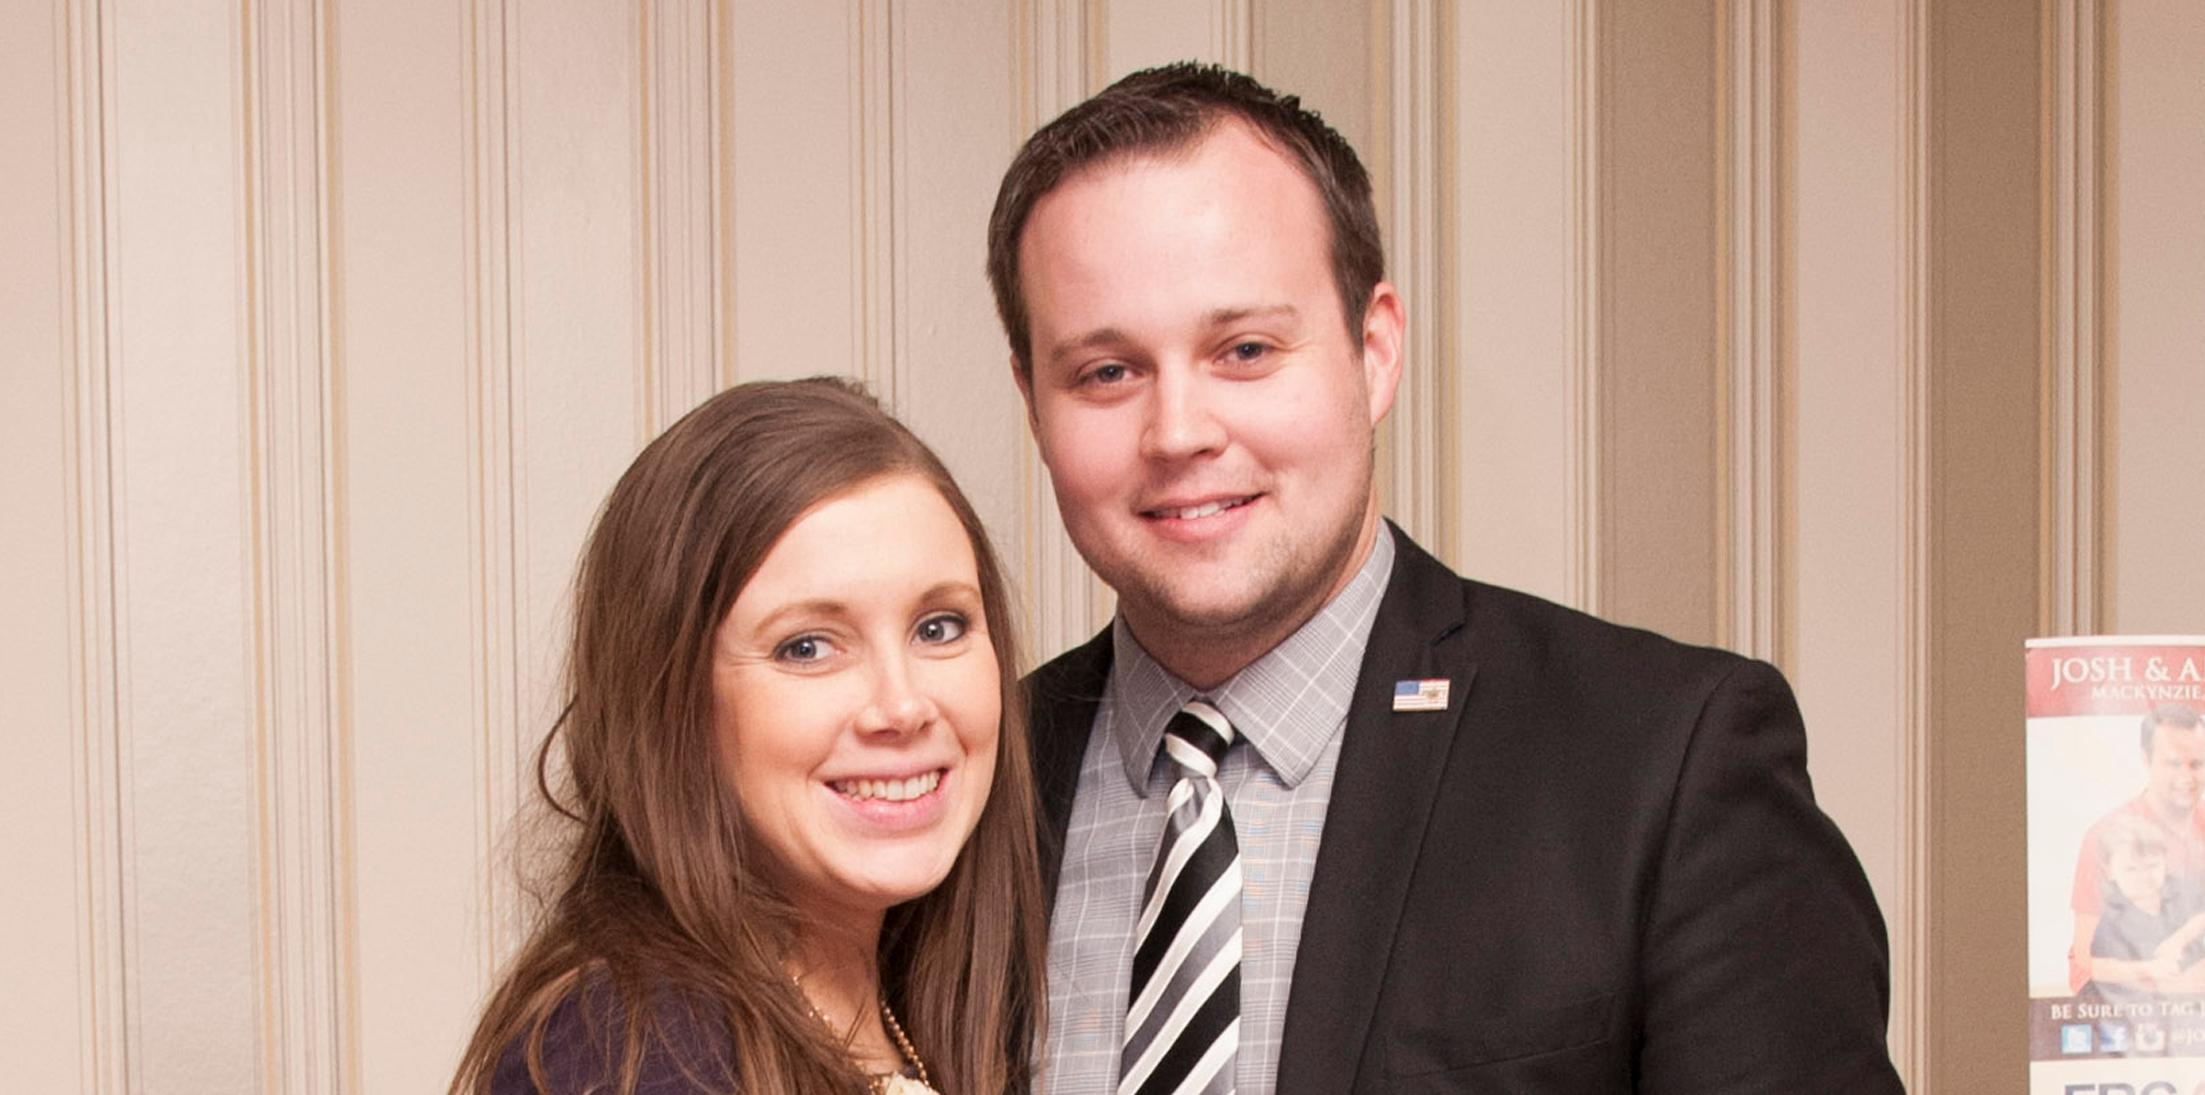 Duck Dynasty's Phil Robertson and The Duggars Speak At CPAC